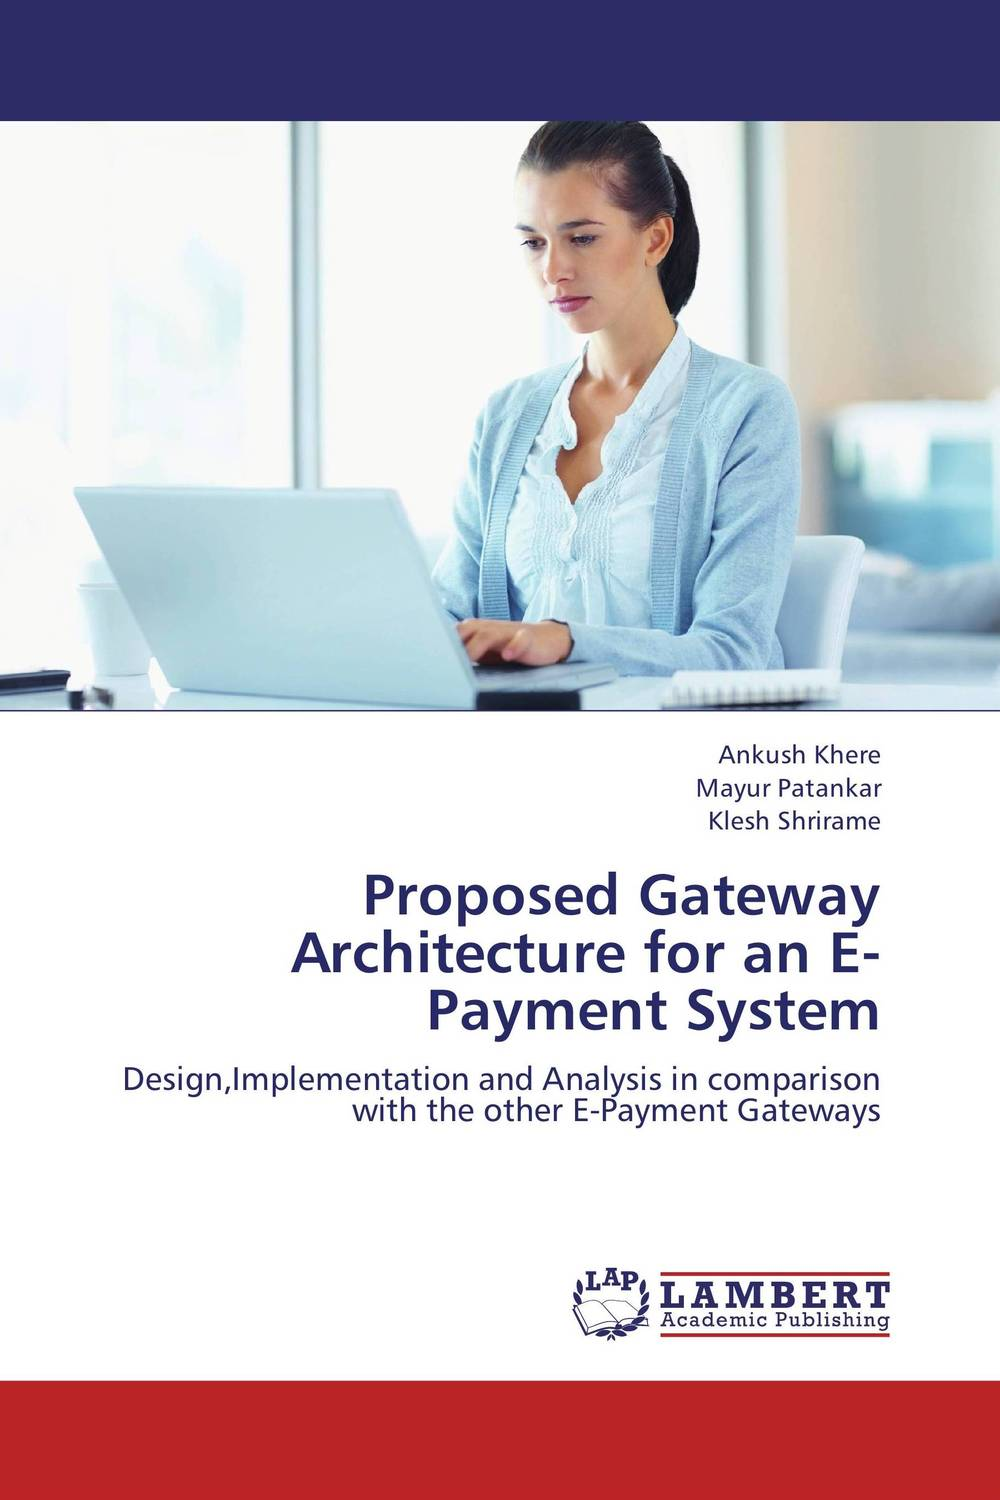 Proposed Gateway Architecture for an     E-Payment System shakespeare w the merchant of venice книга для чтения